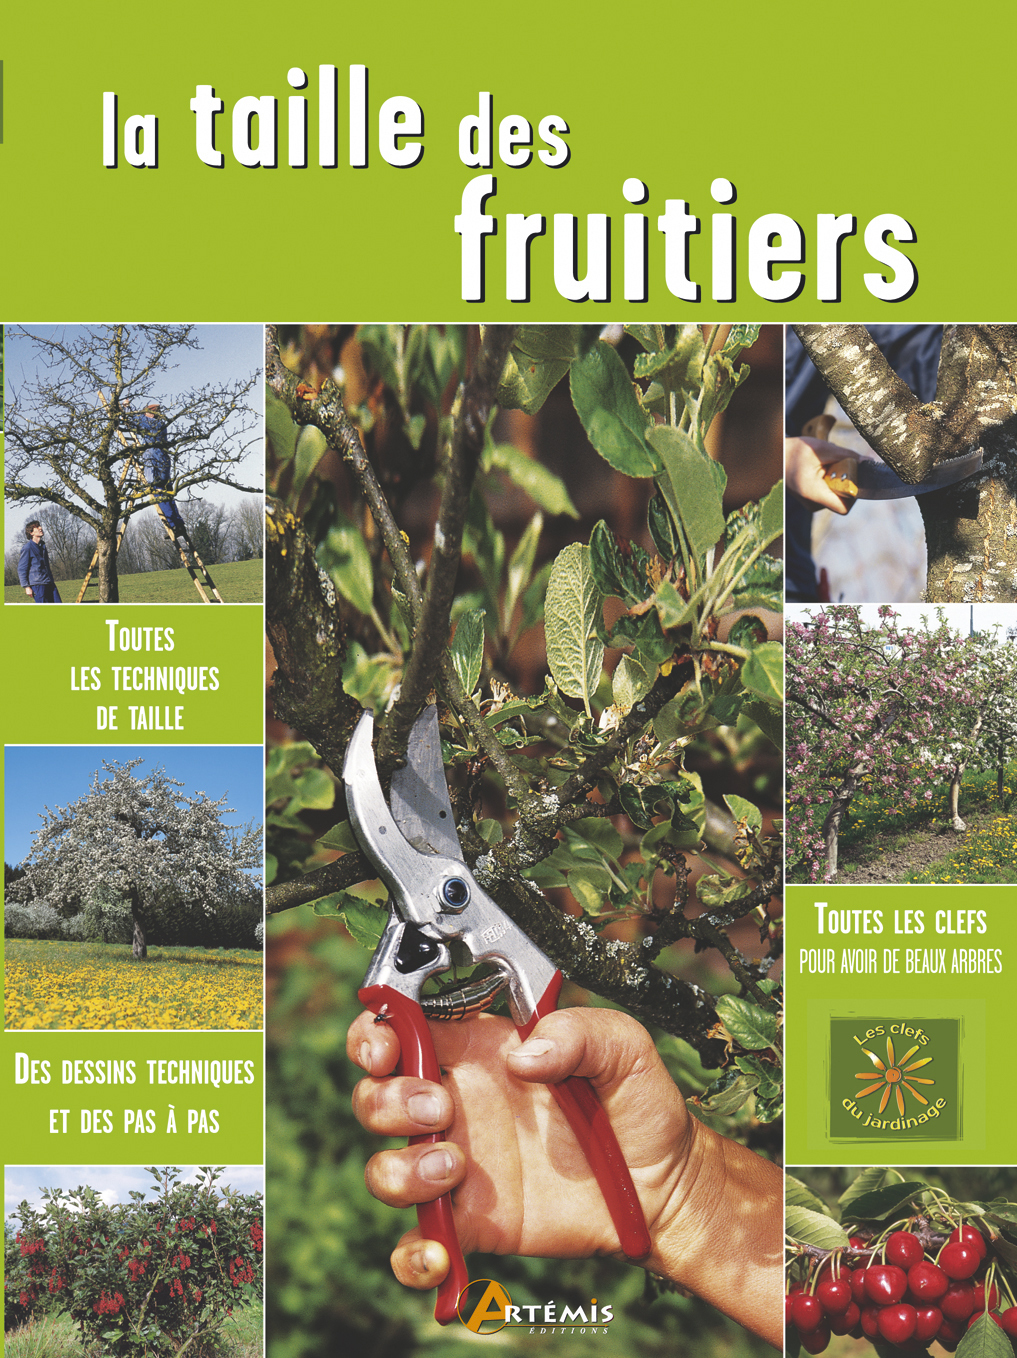 **TAILLE DES FRUITIERS